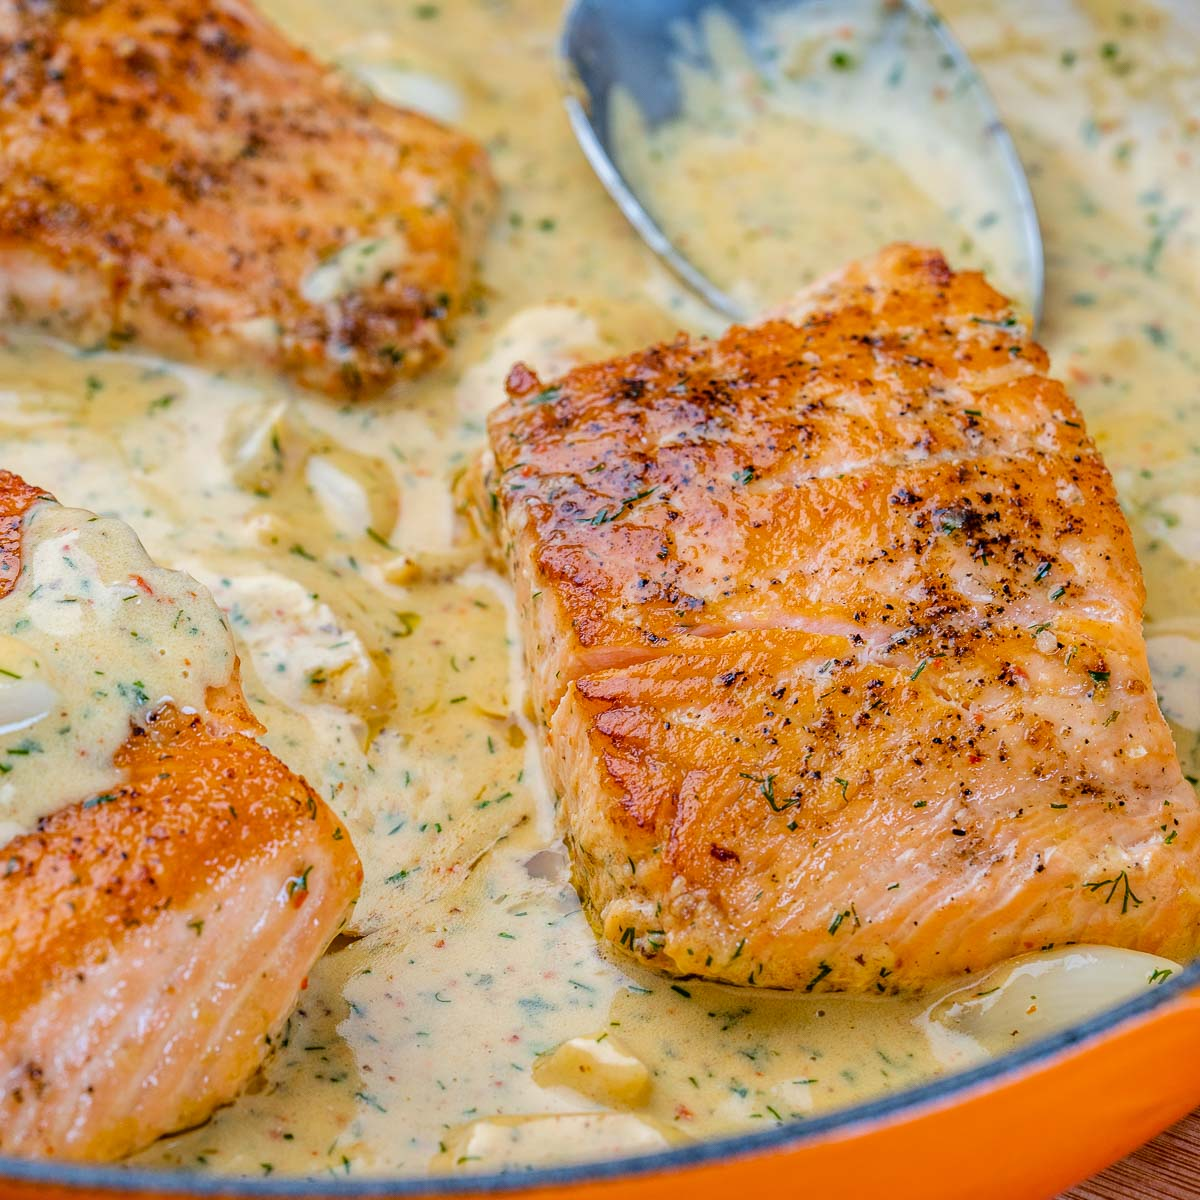 cooked salmon in creamy sauce